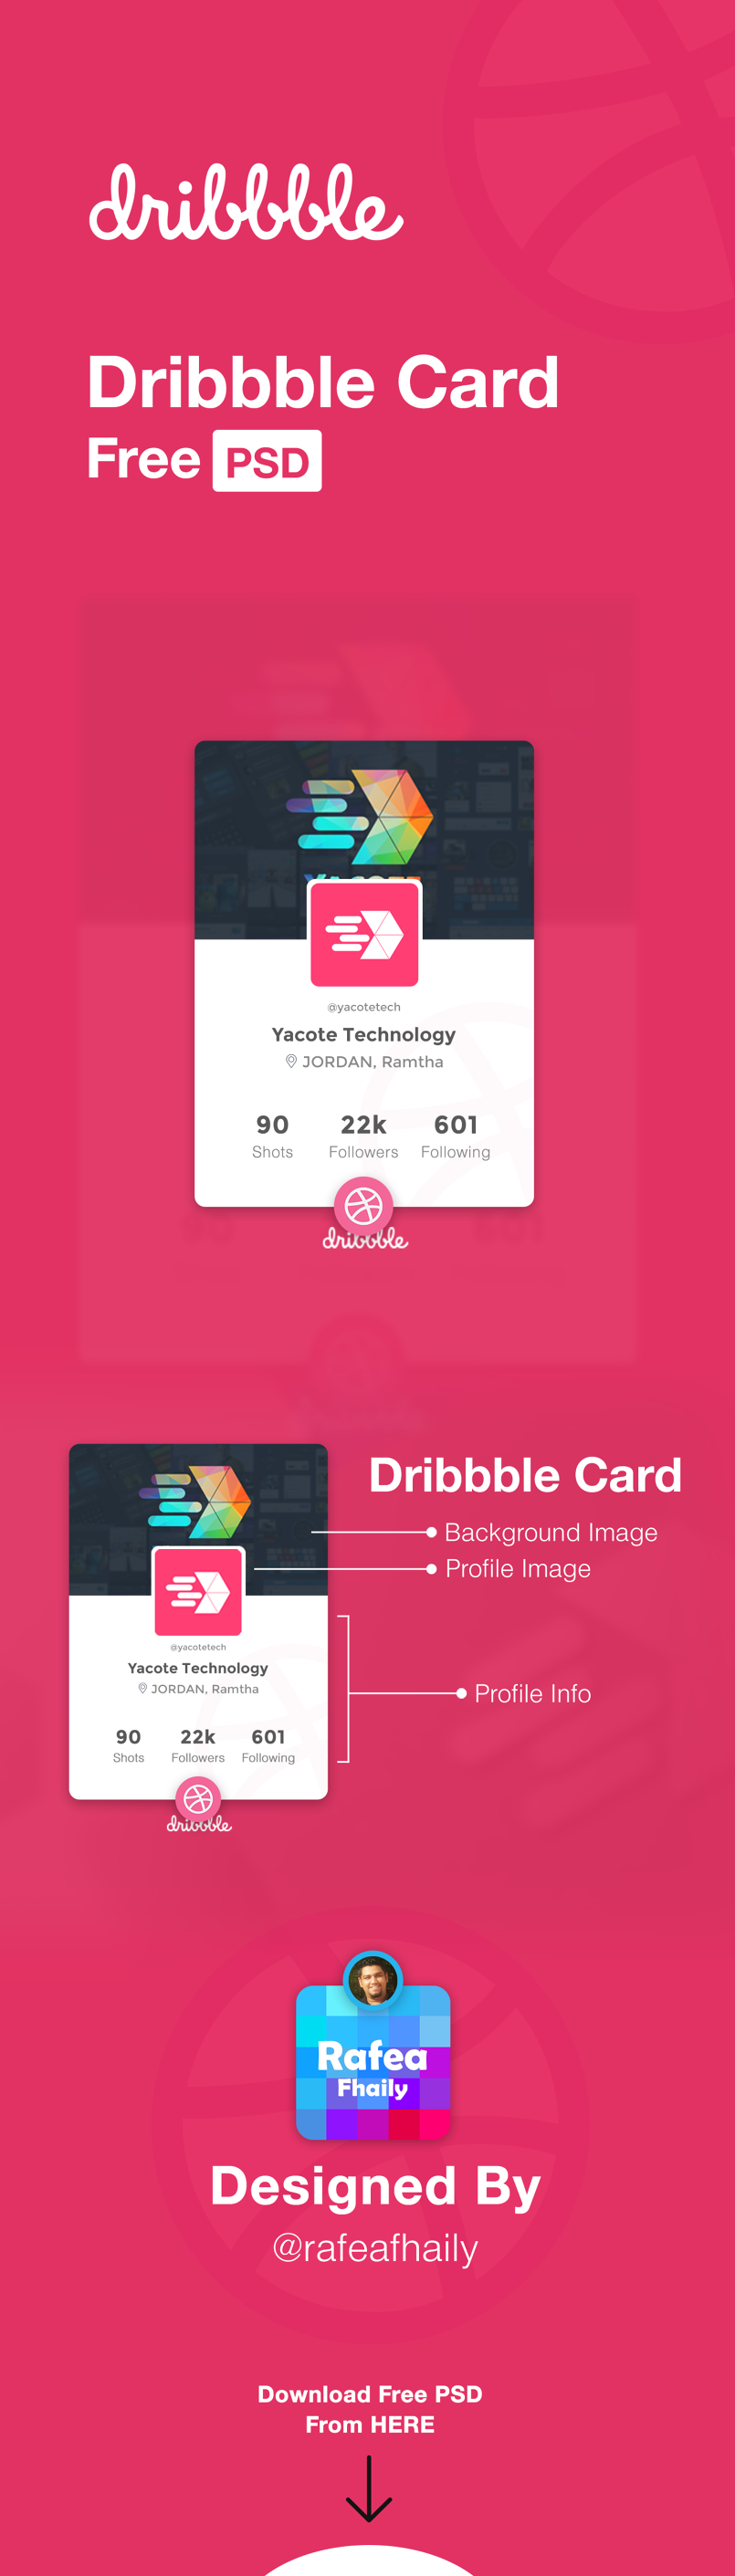 Dribbble Card Free PSD